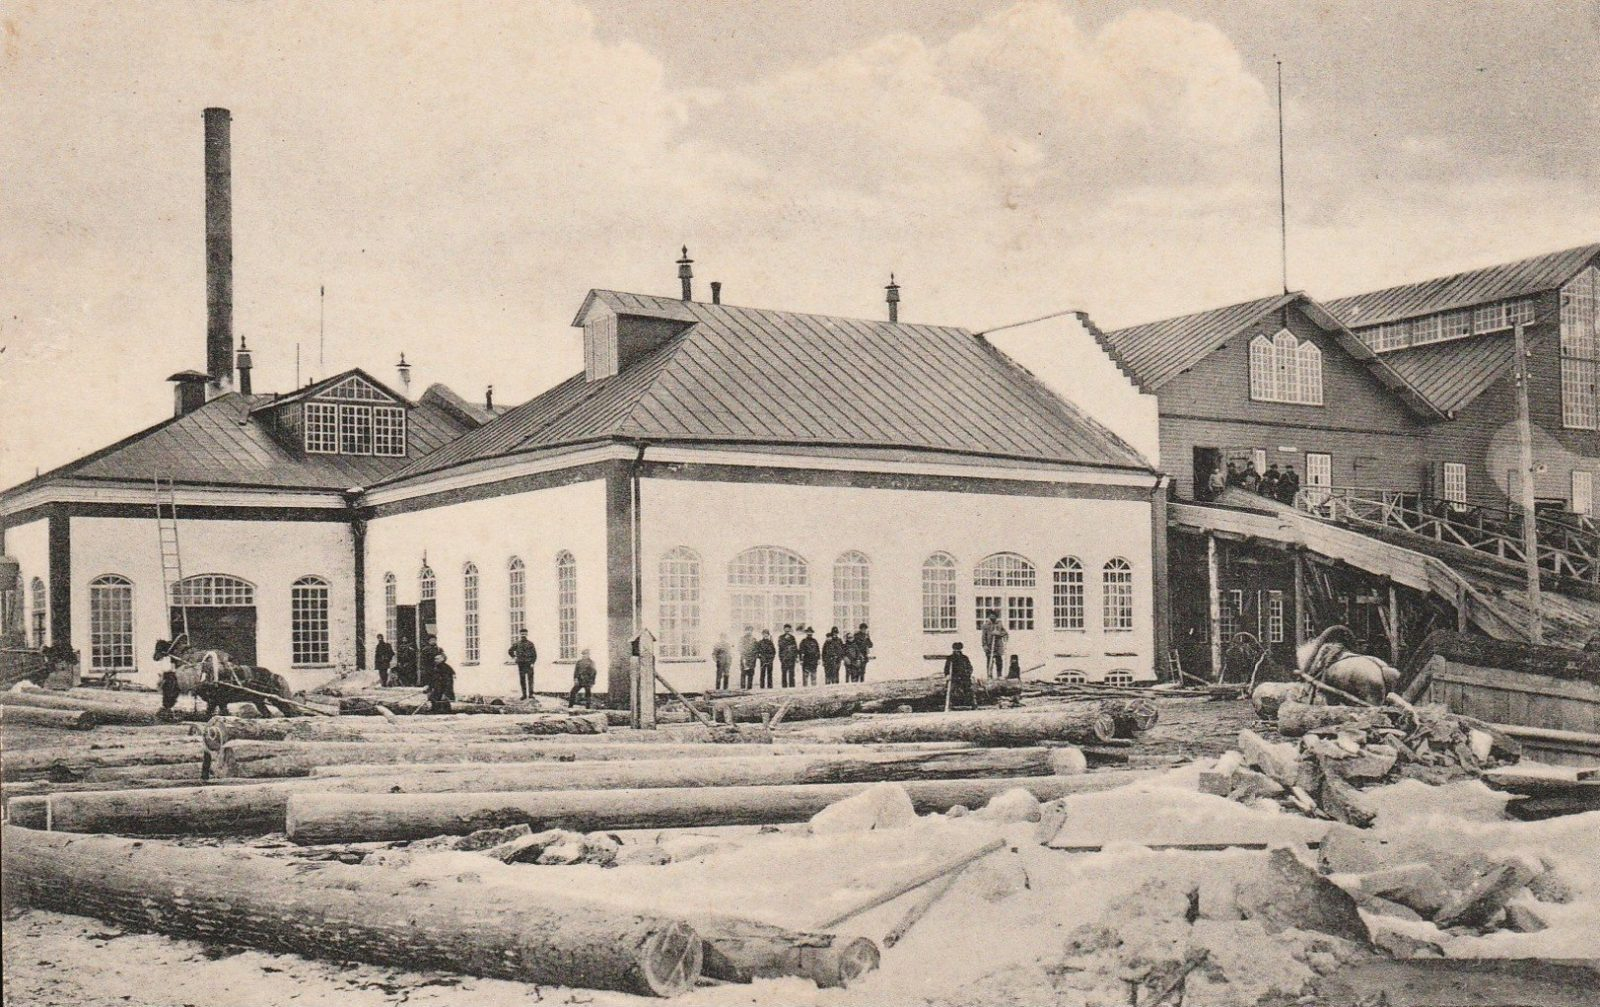 Maimaksa. Sawmill plant of brothers Valnevyh